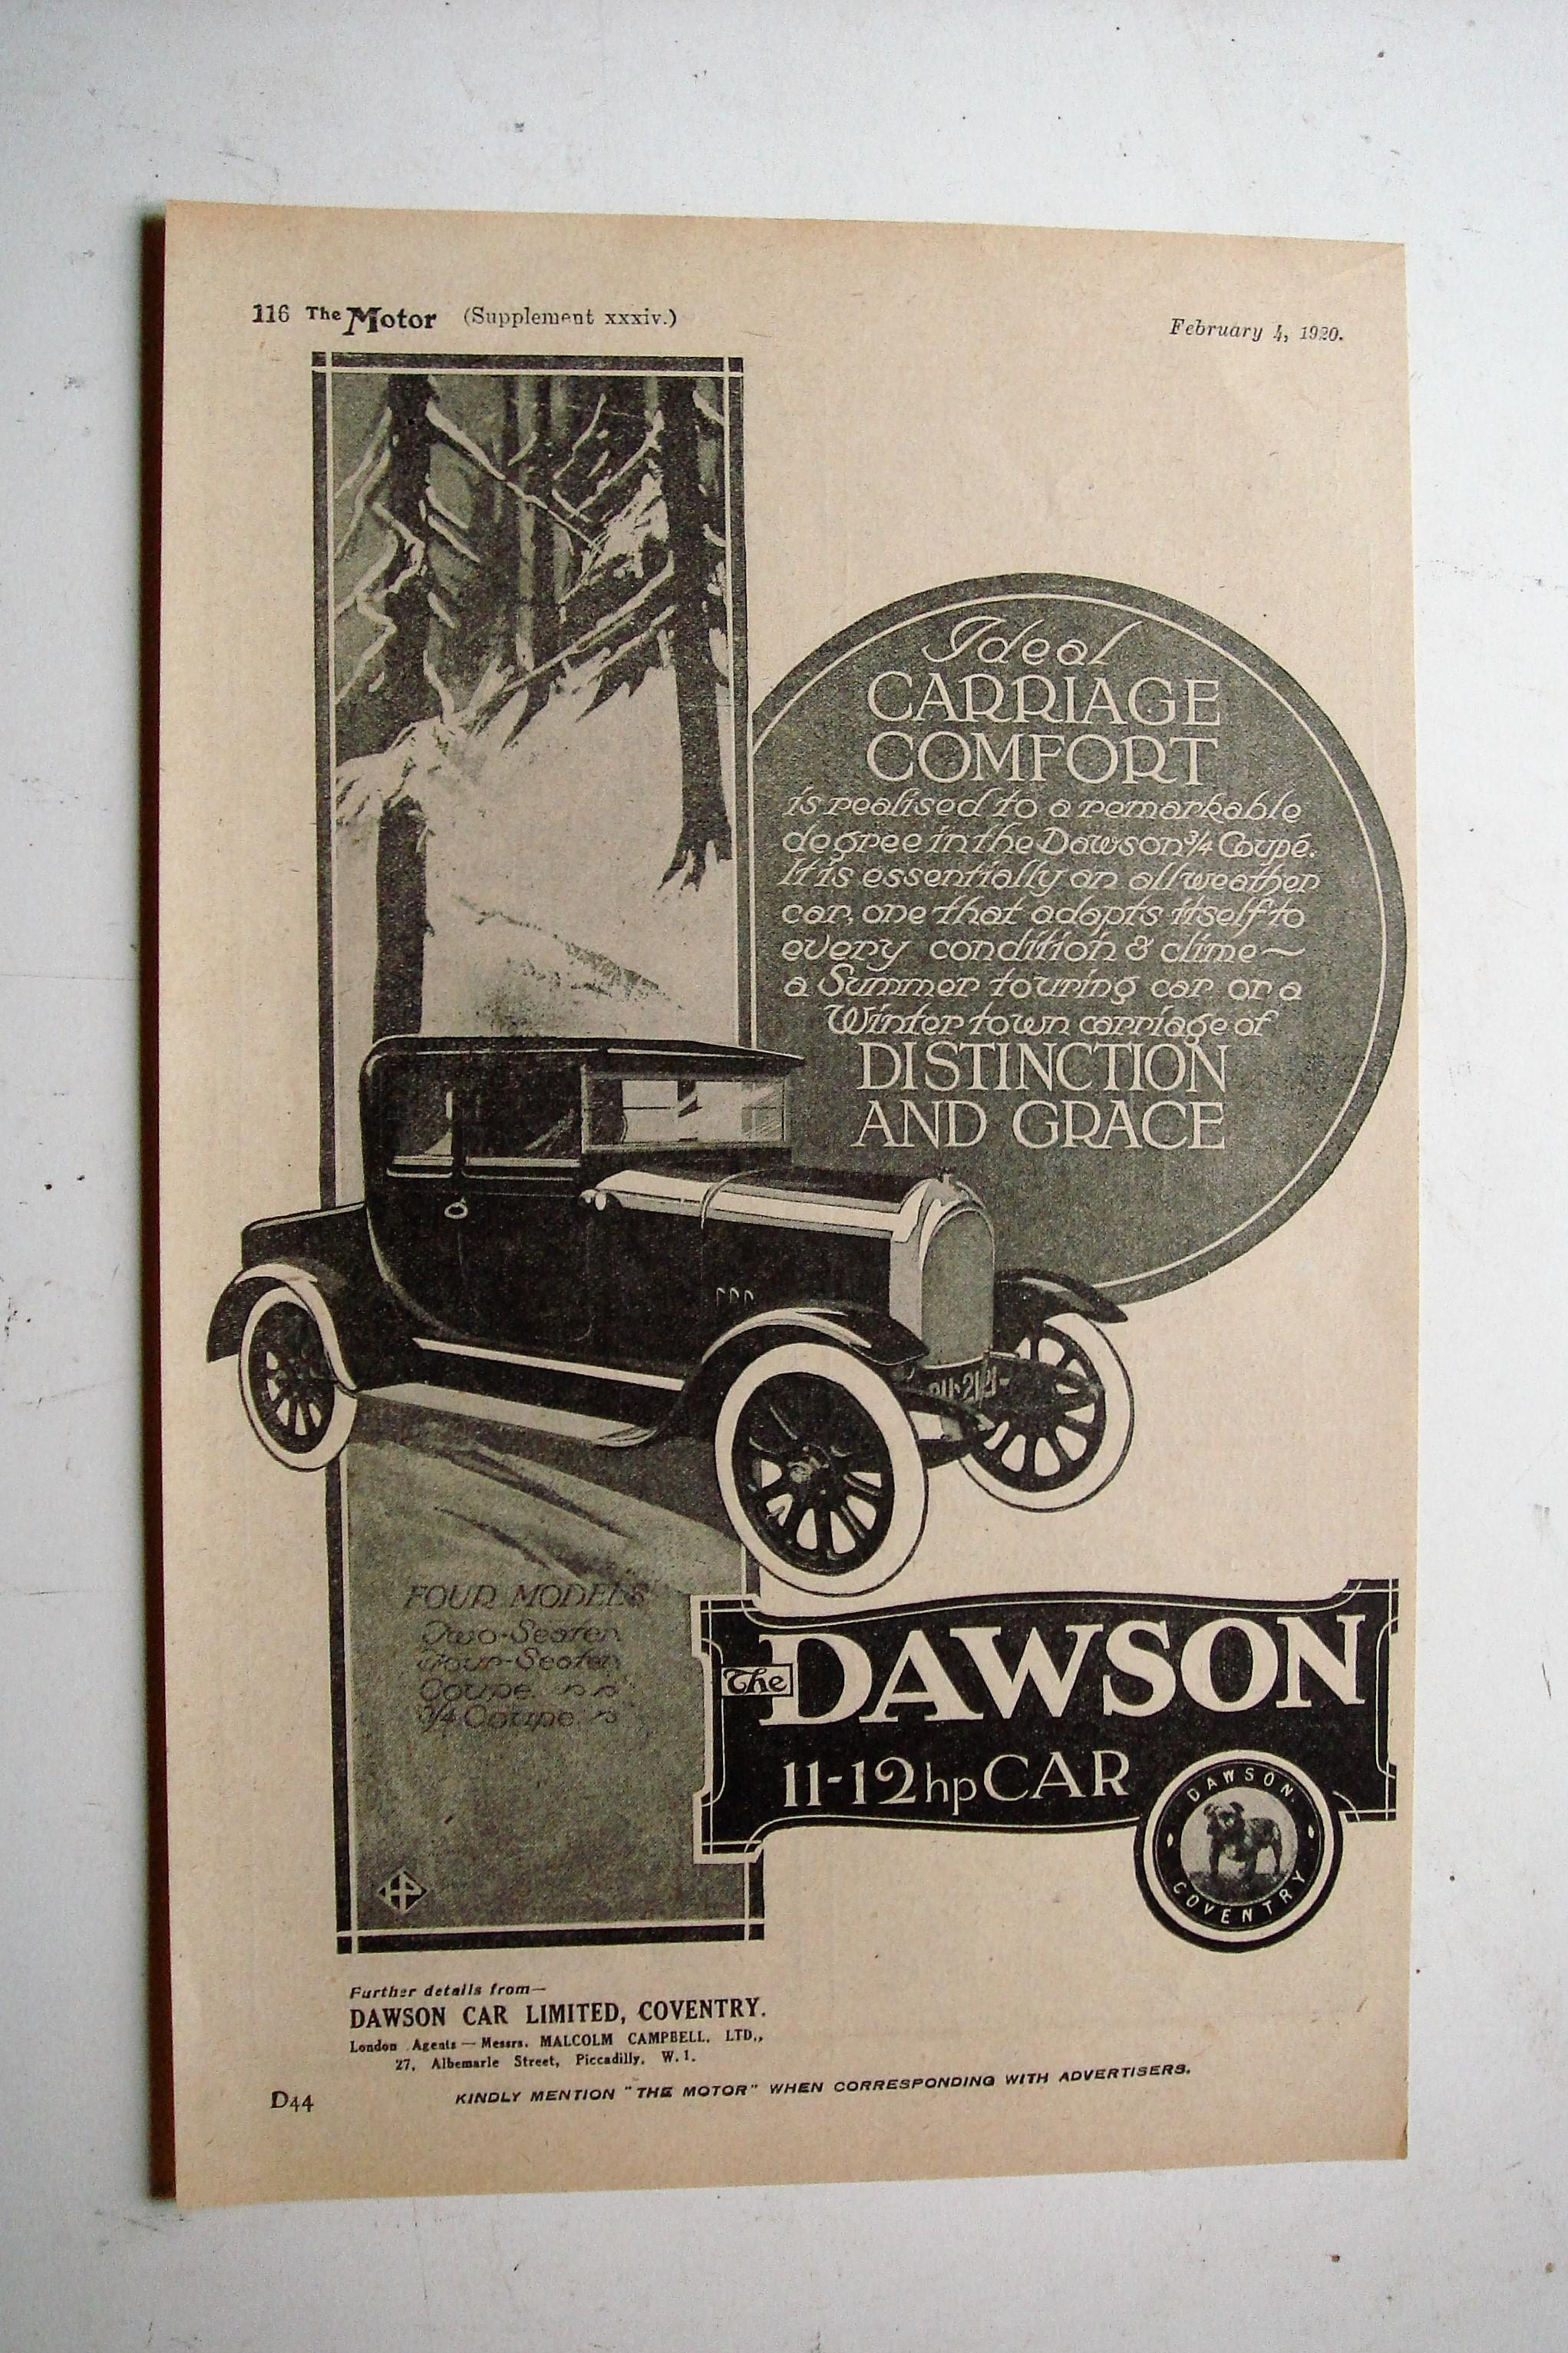 Original 1920 Advertisement for The Dawson (Coventry Built) 11-12 hp Car